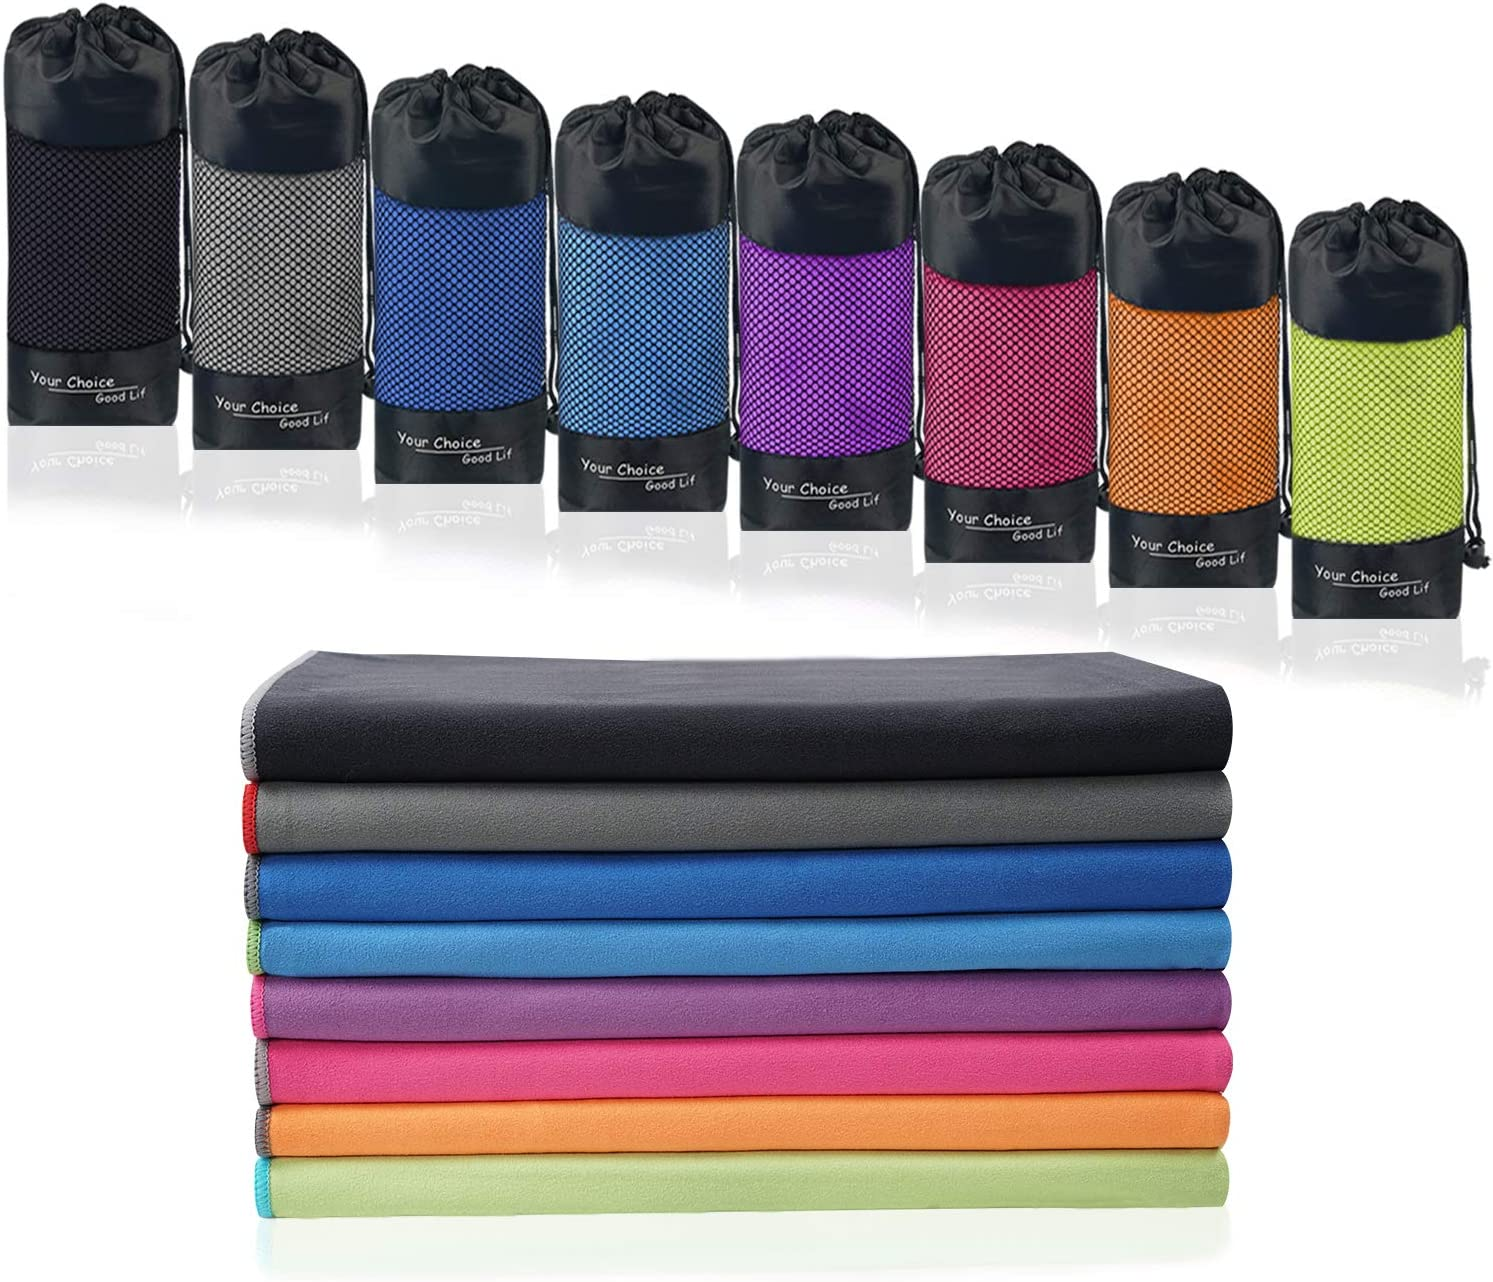 Your Choice Microfiber Travel Towel, Fast Drying Towel for Camping, Travel, Beach, Gym, Backpacking, Sports and Swimming. Sweat Absorbent, Lightweight and Ultra Compact